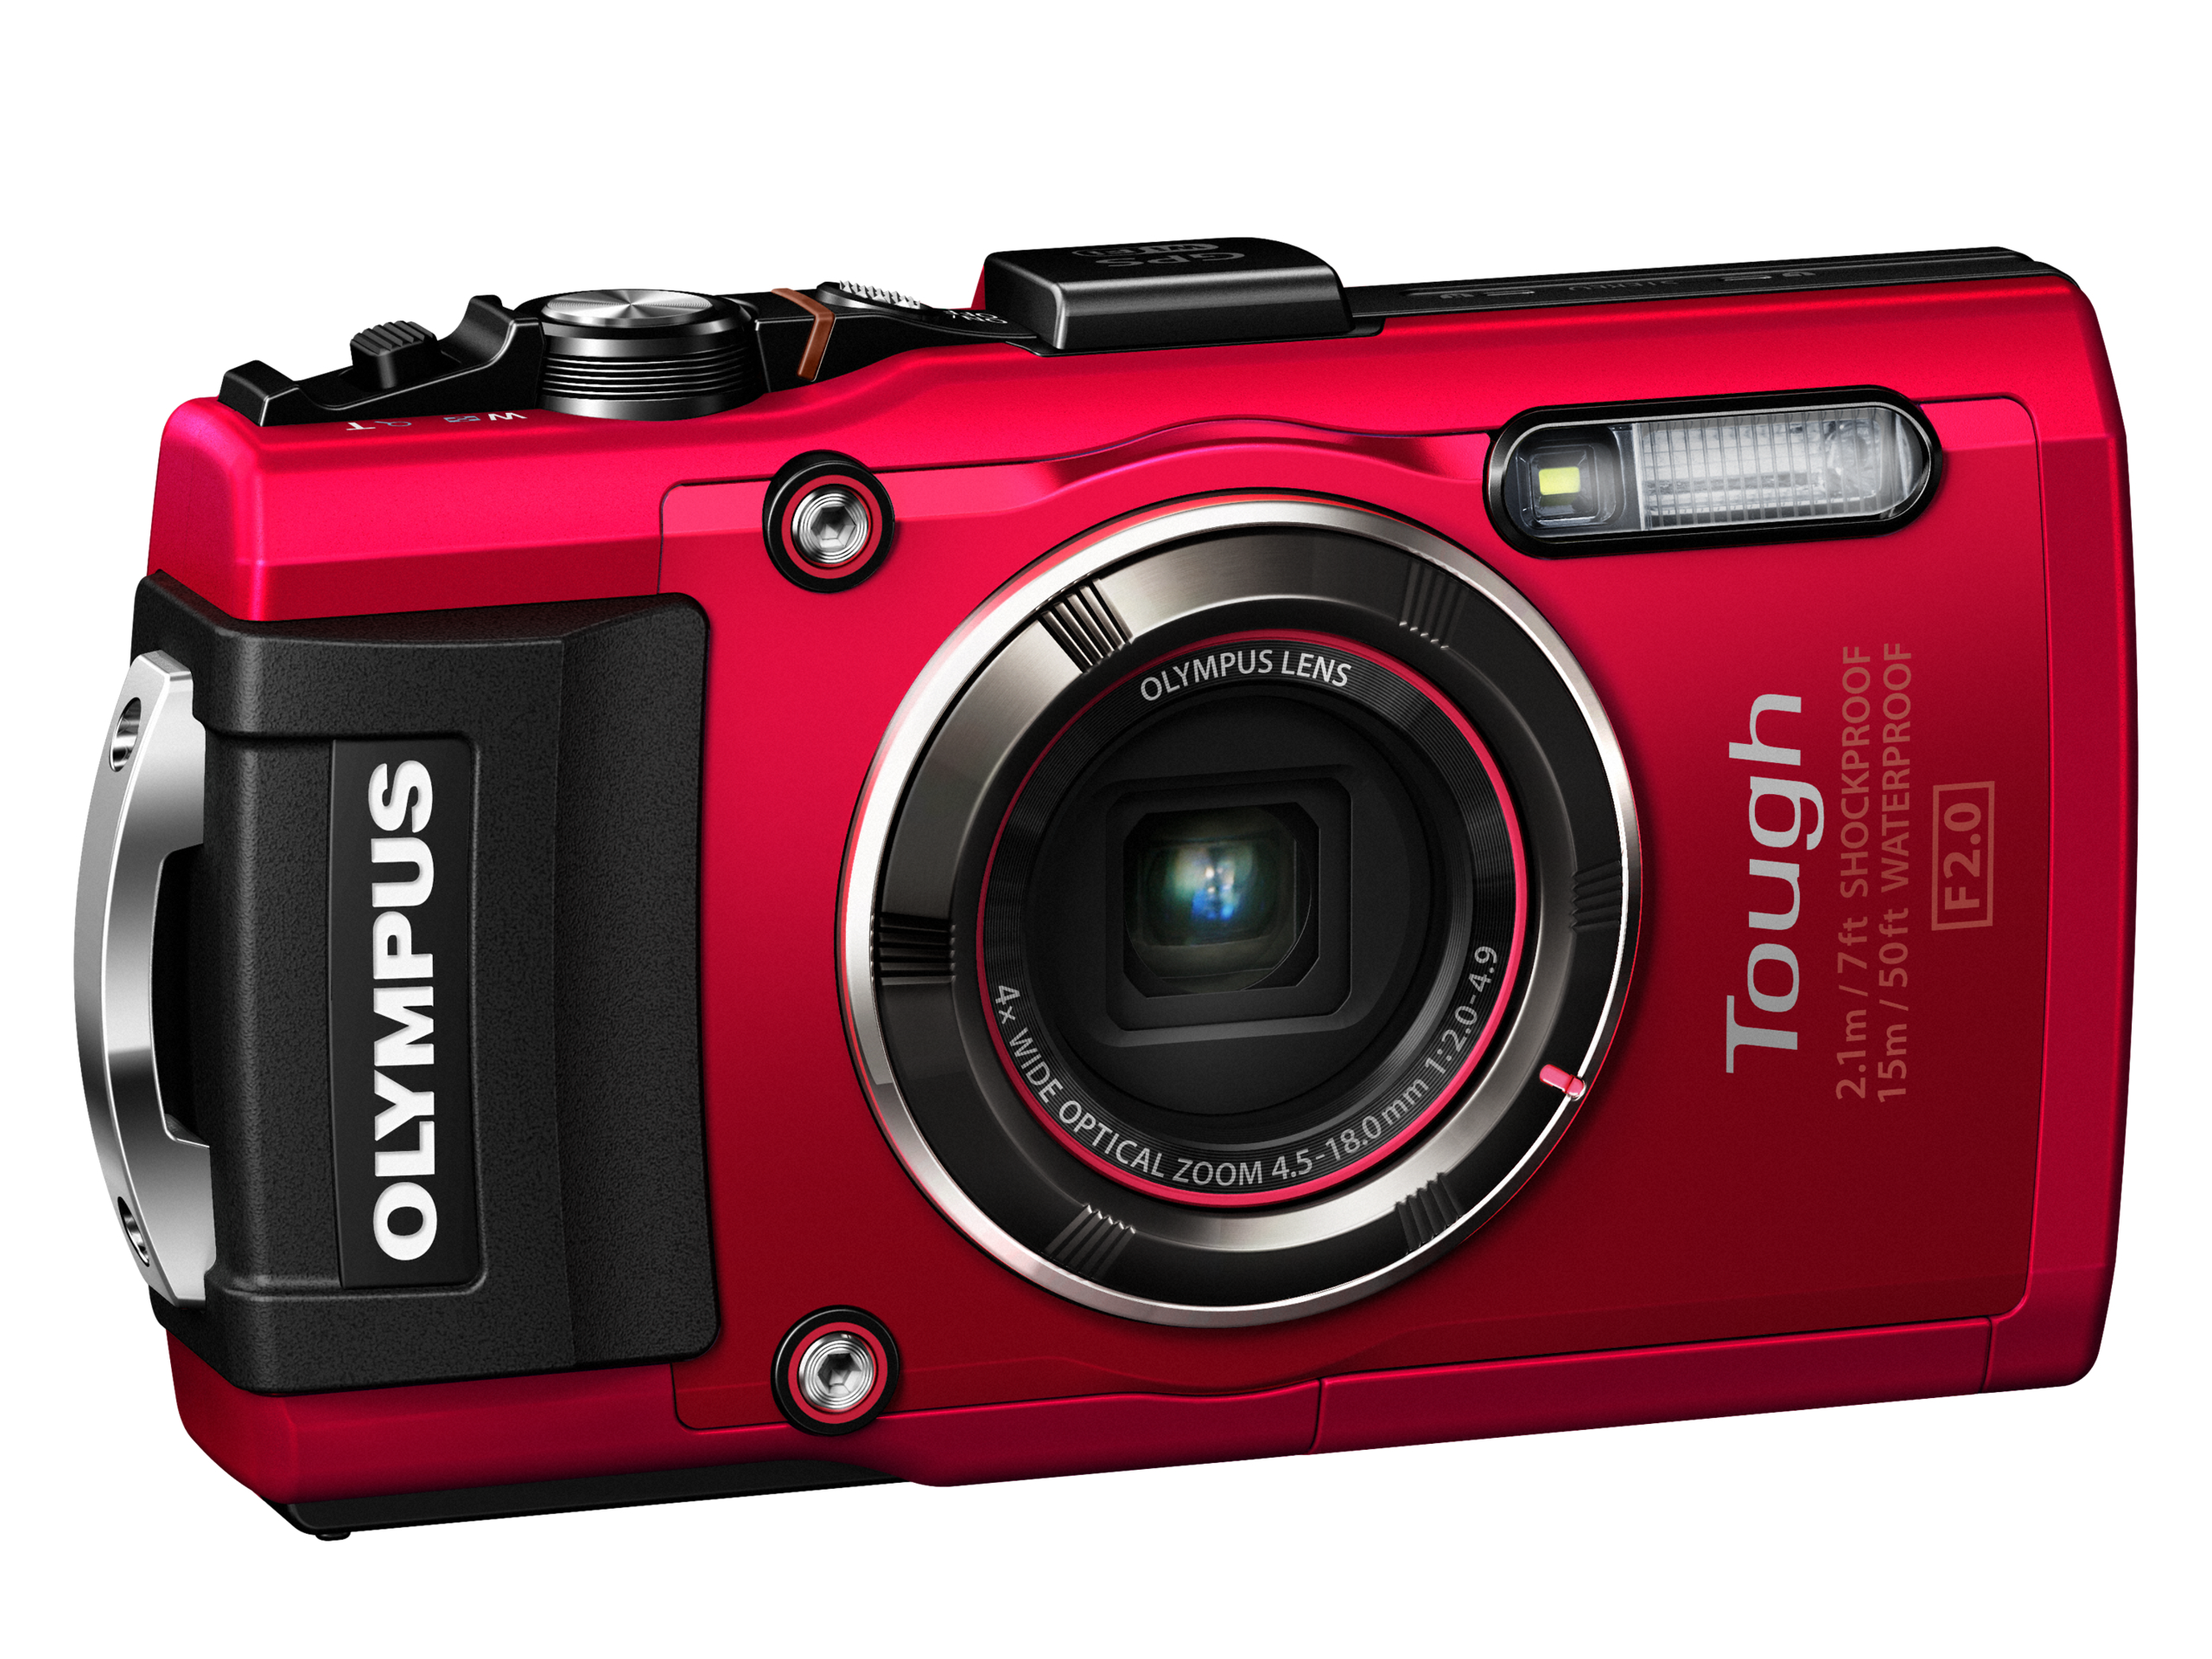 Olympus Stylus Tough 4